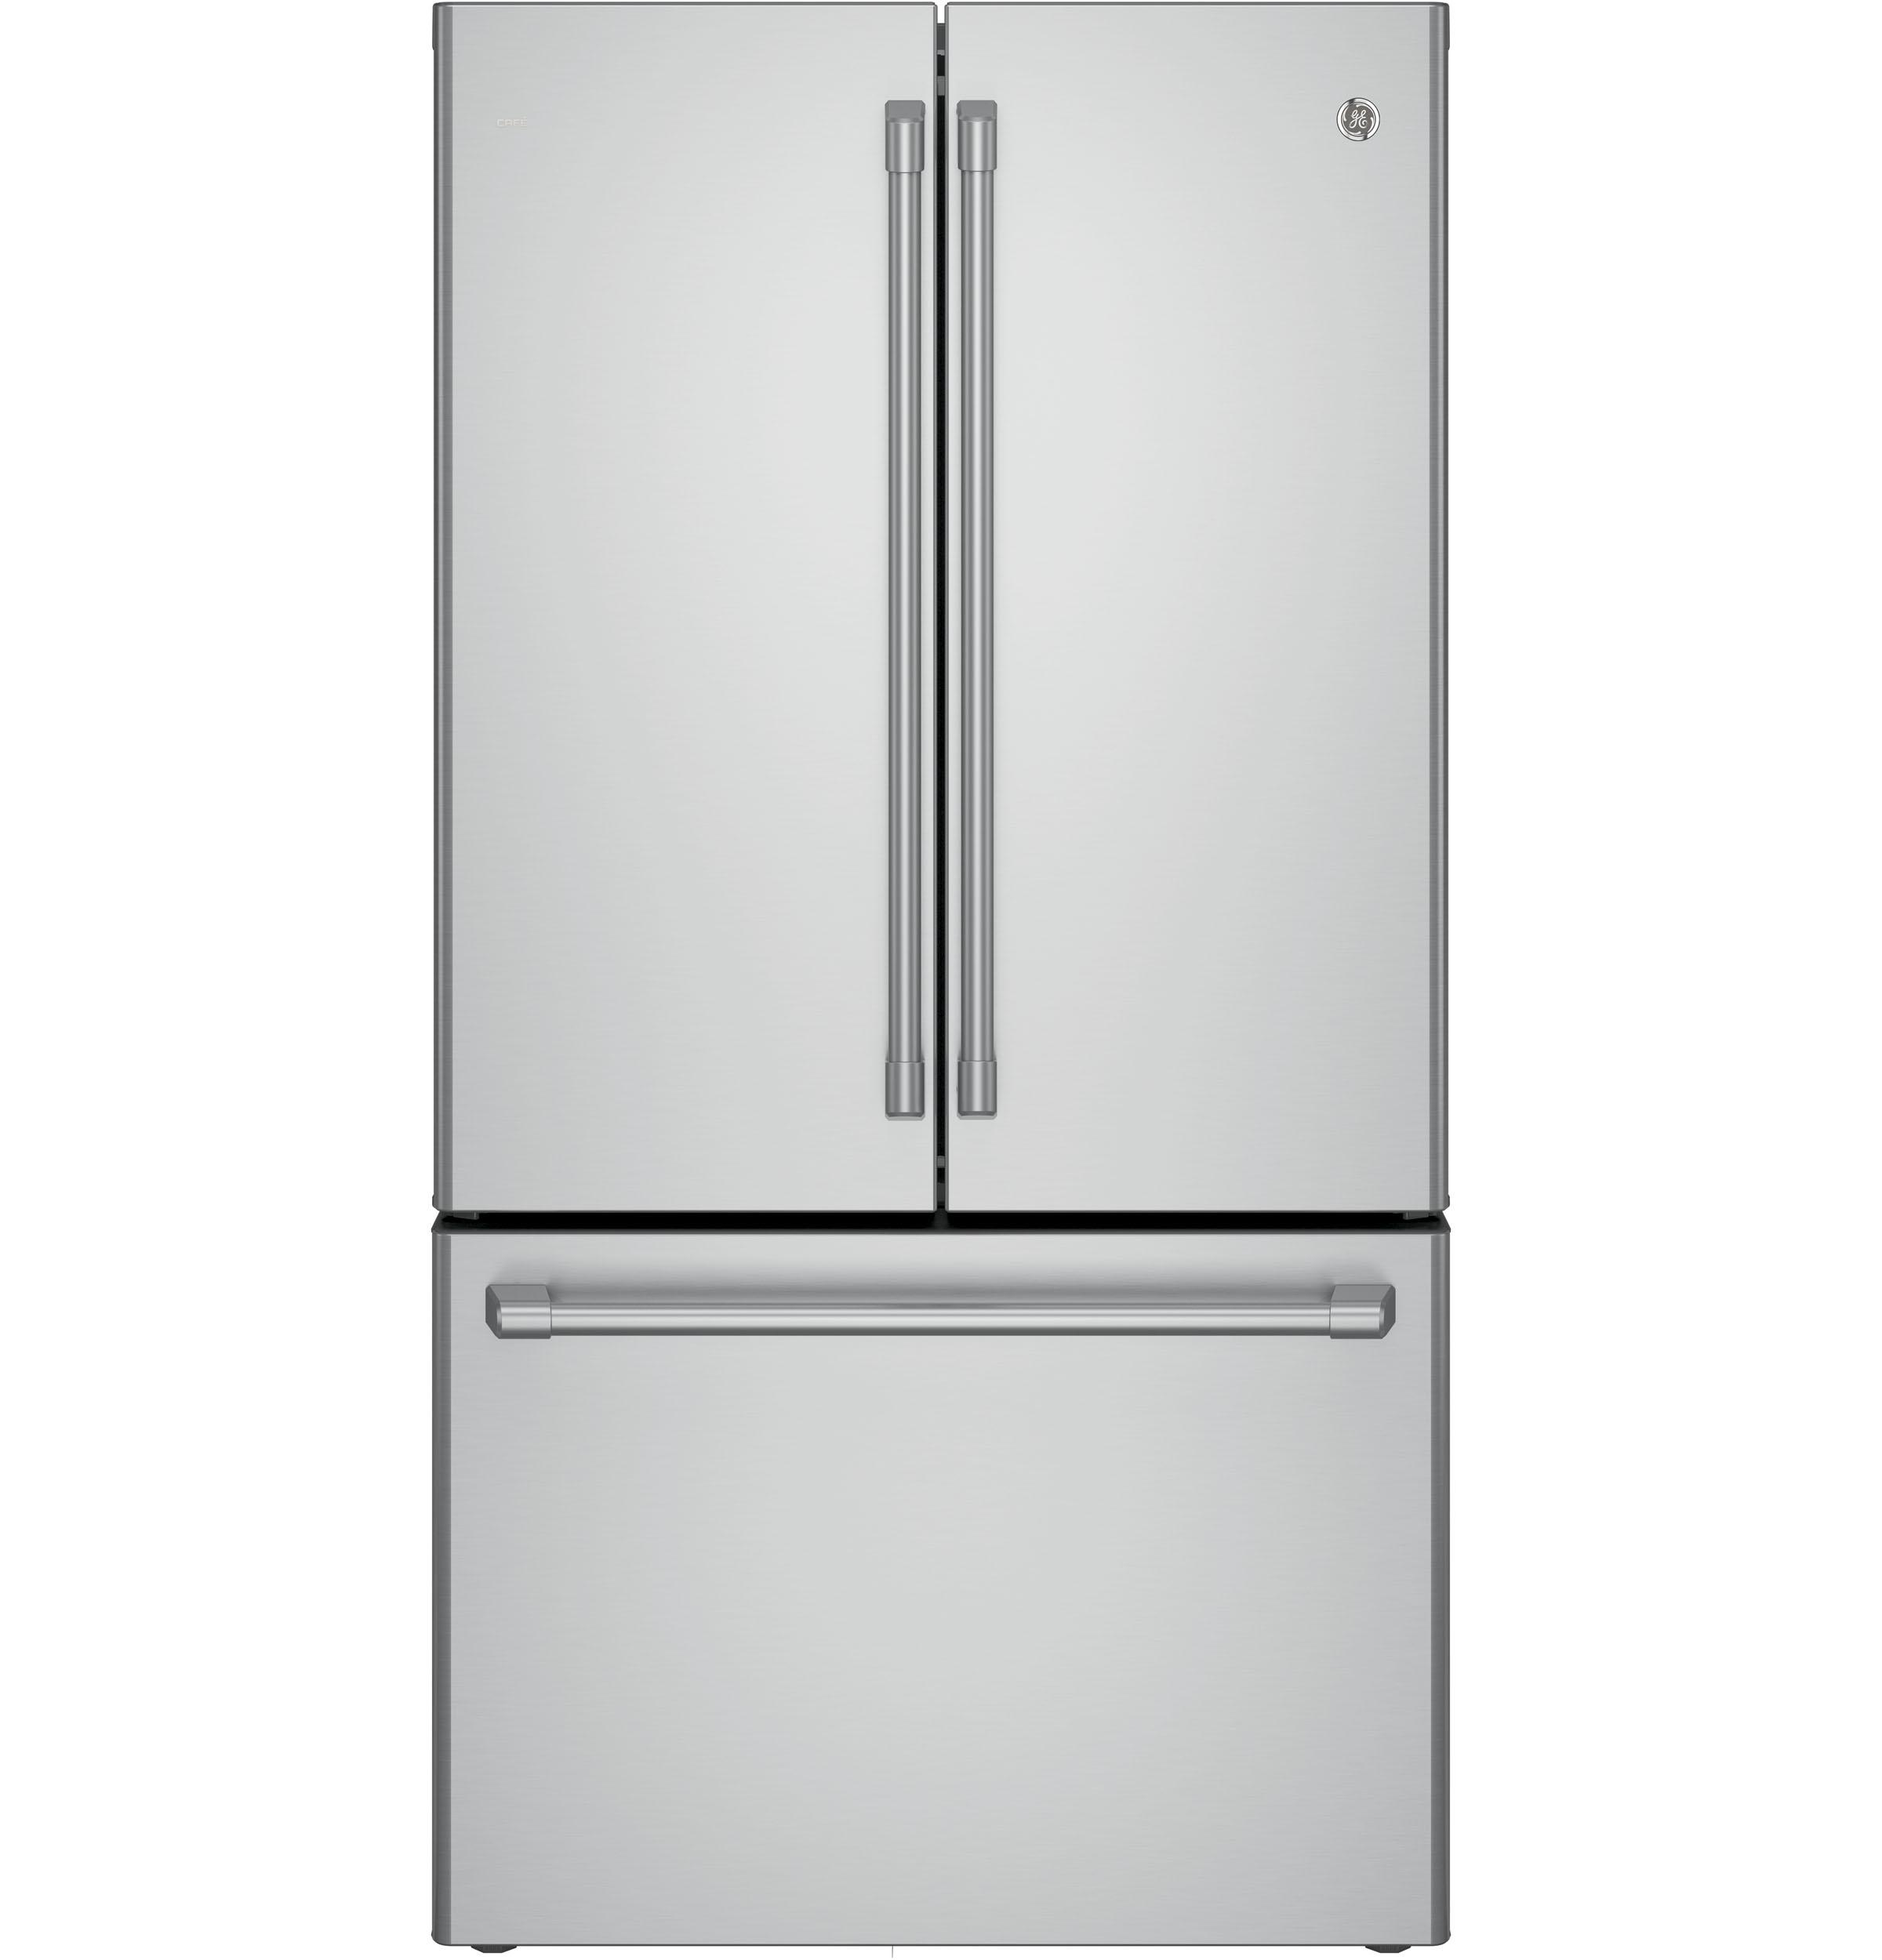 Gentil GE Cafe™ Series ENERGY STAR® 23.1 Cu. Ft. Counter Depth French